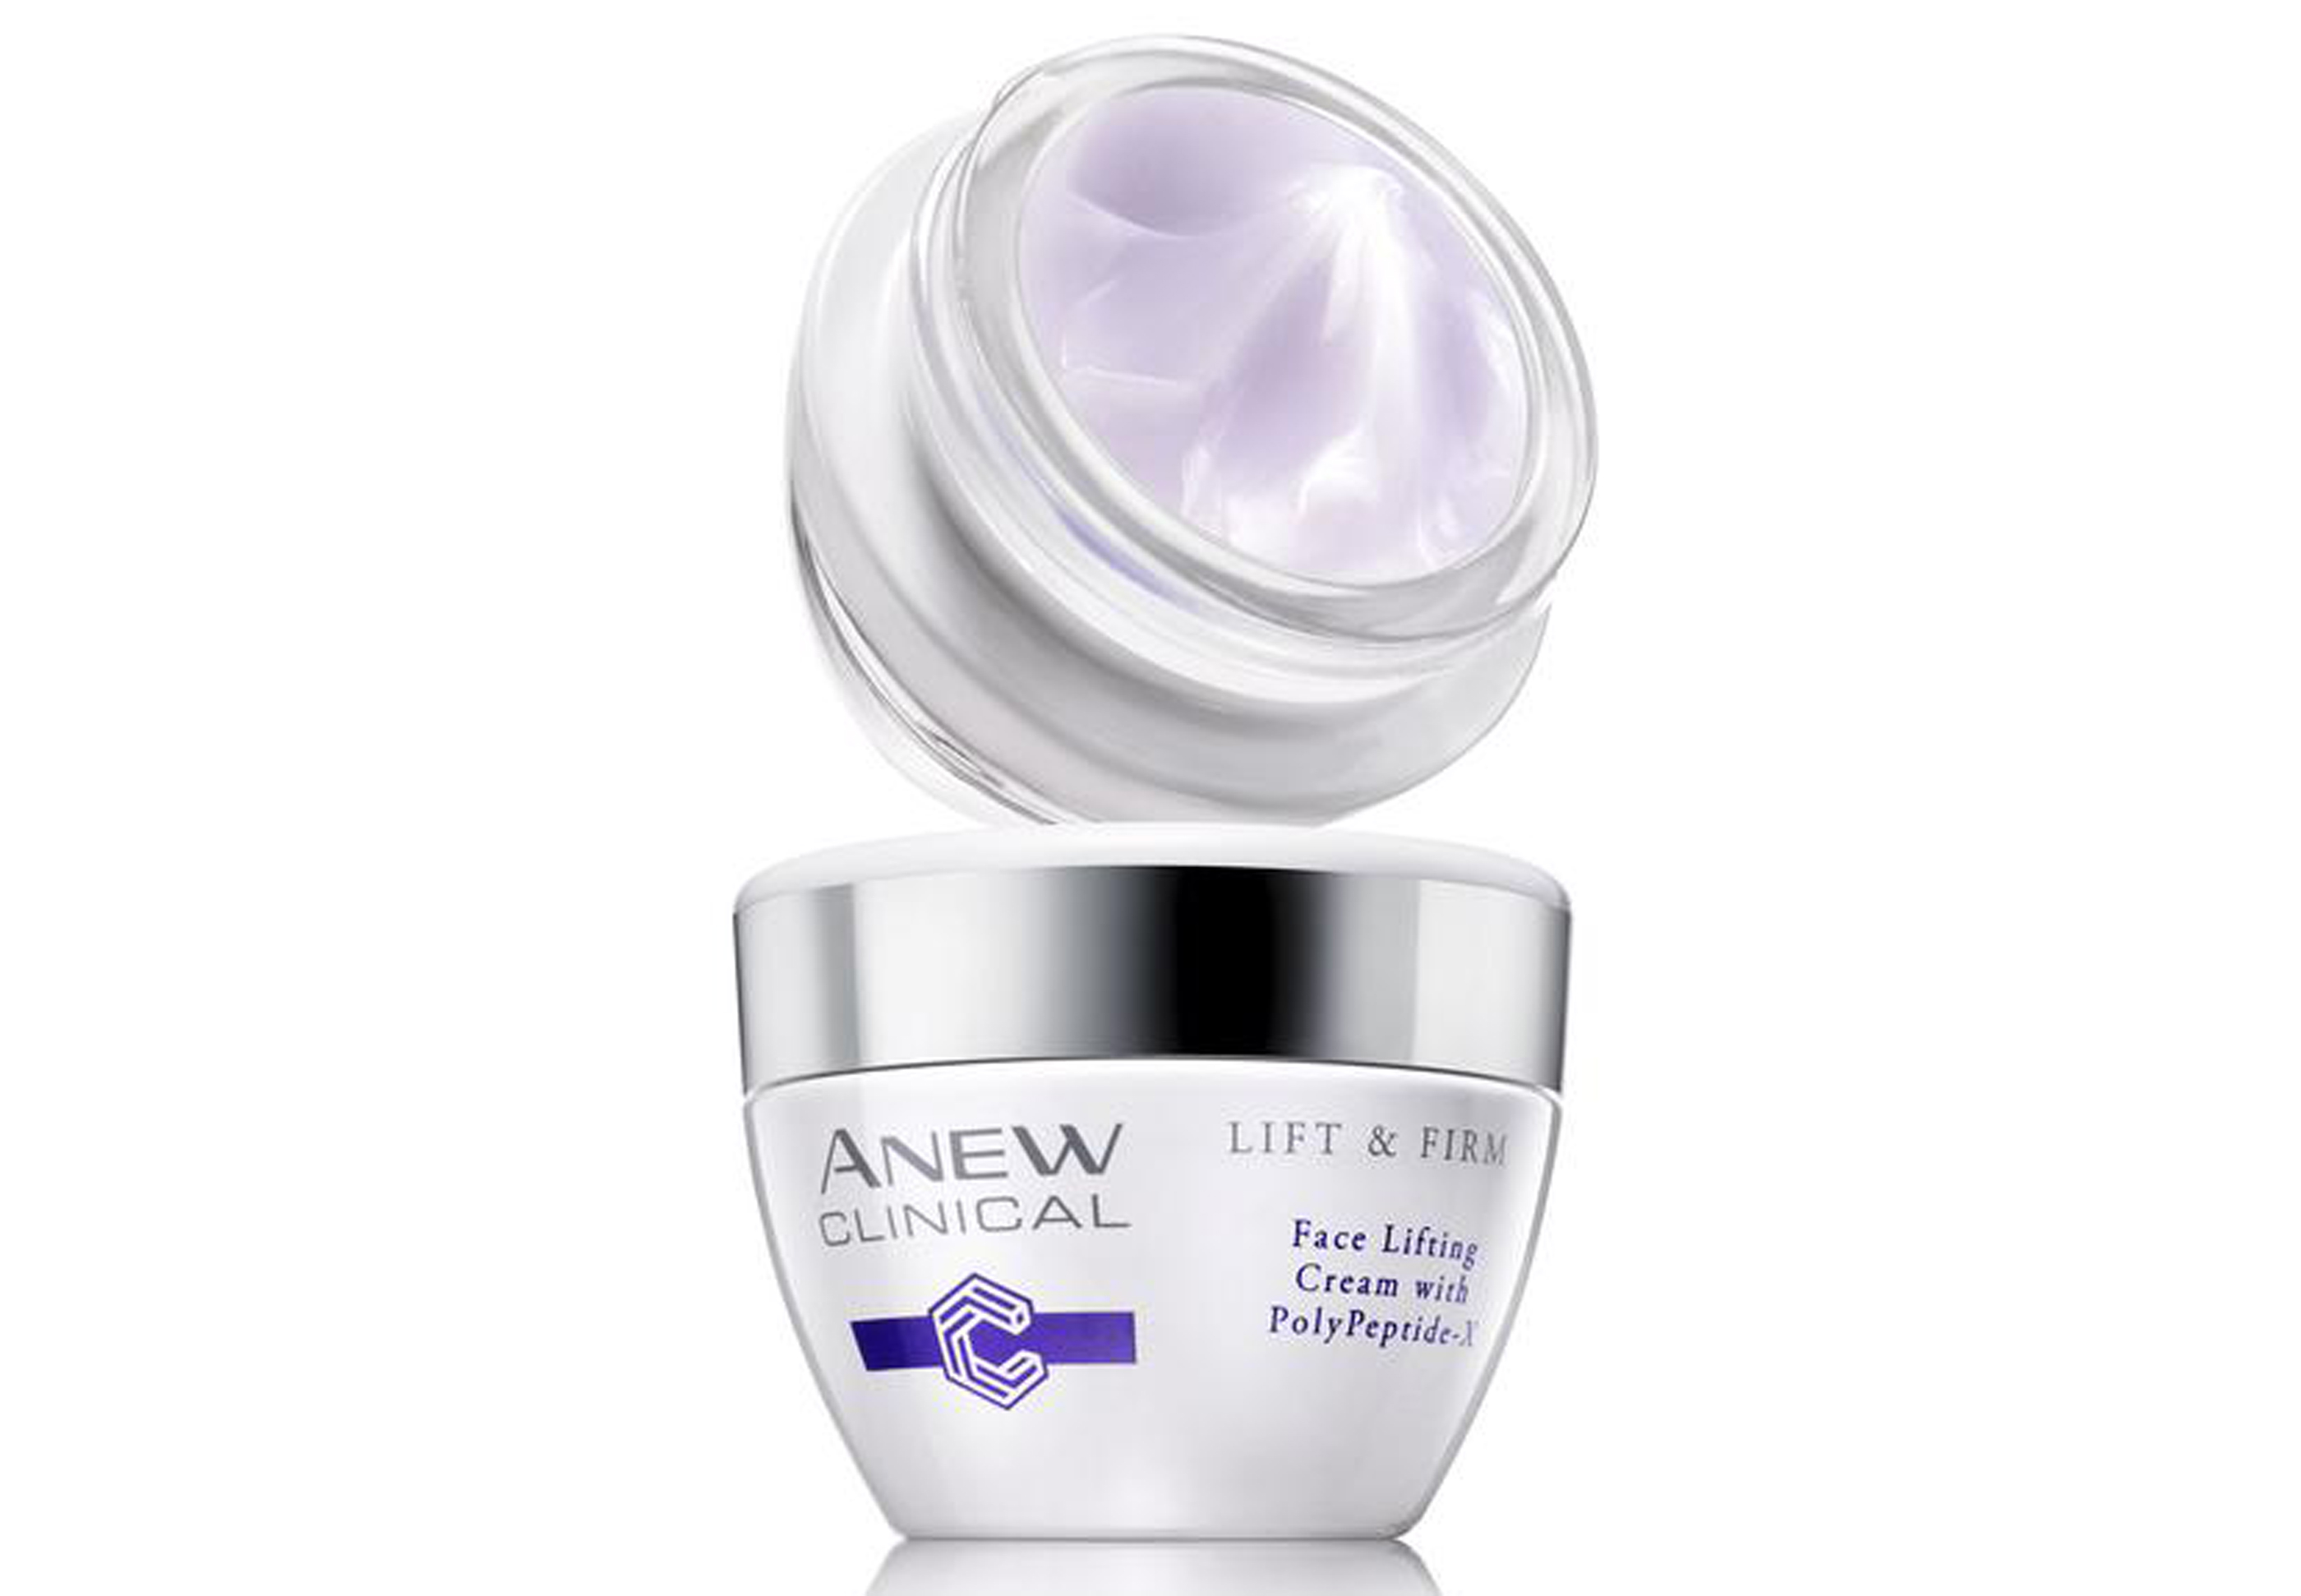 Avon Anew Clinical Lift & Firm Face Lifting Cream, £12/AED53.86